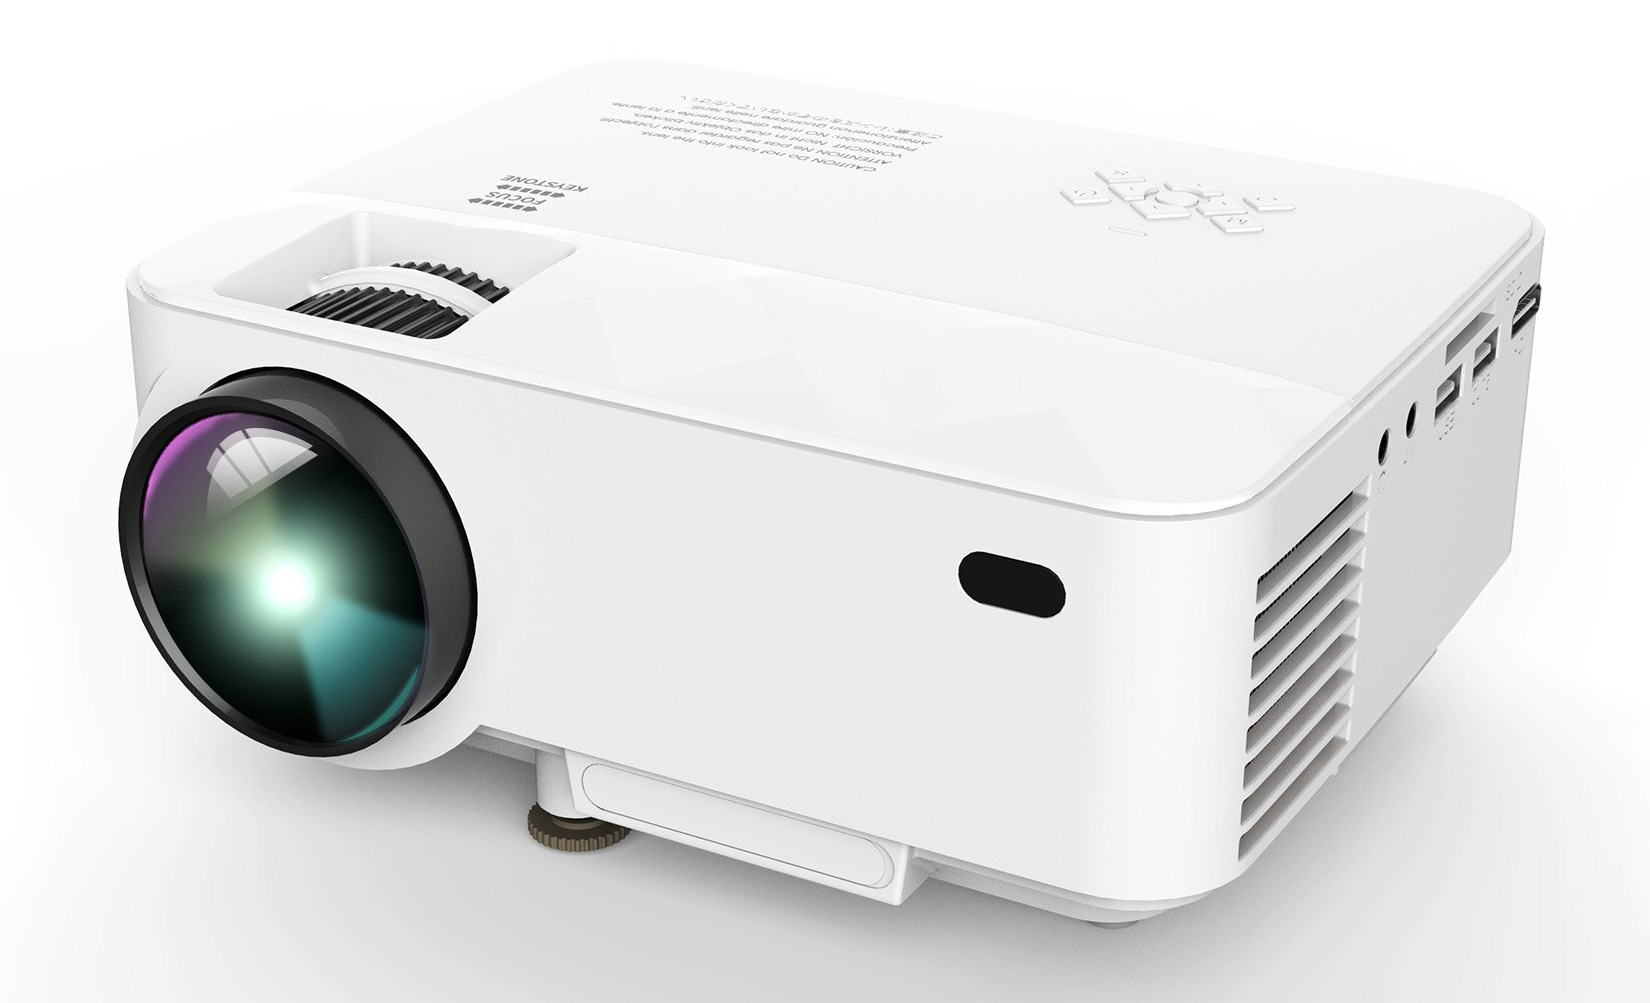 Dbpower t20 portable mini led projector review for Best pocket projector review